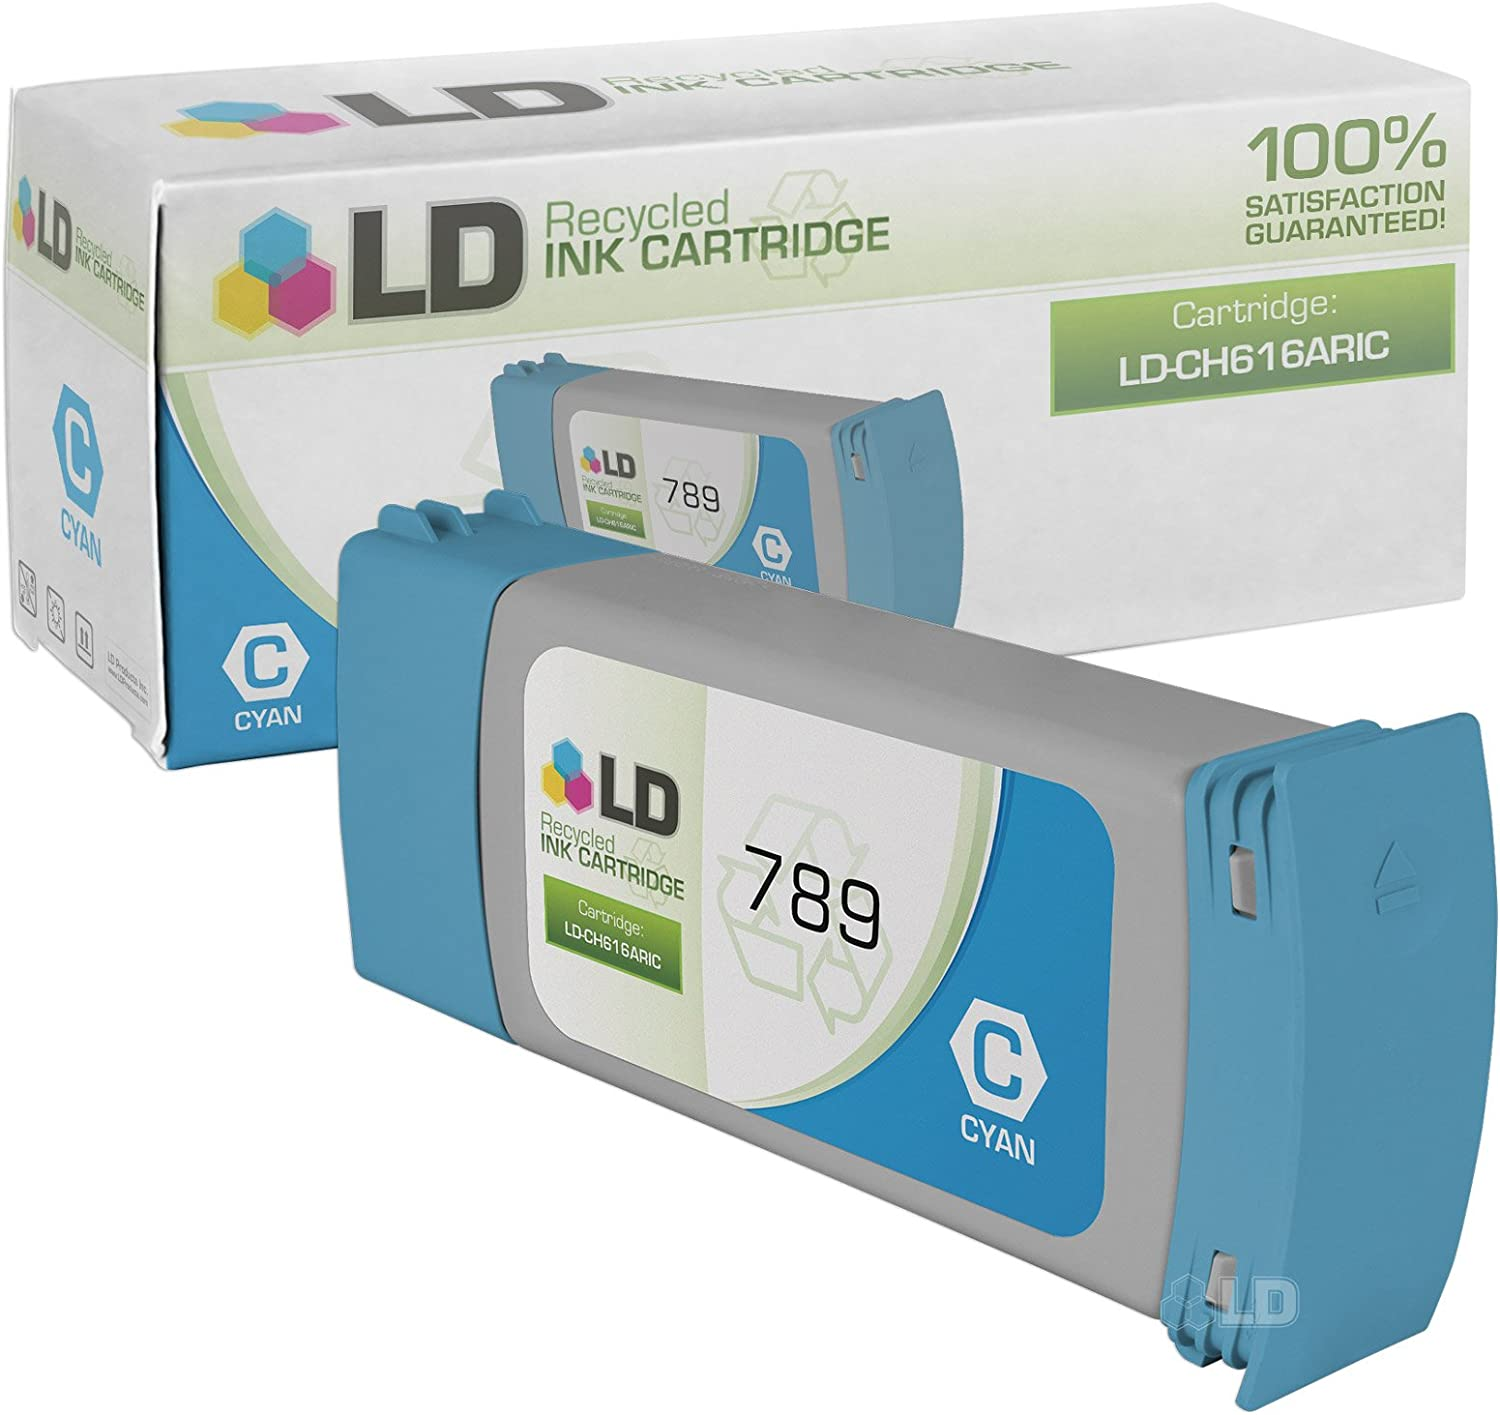 LD Remanufactured Ink Cartridge Replacement for HP 789 CH616A (Cyan)